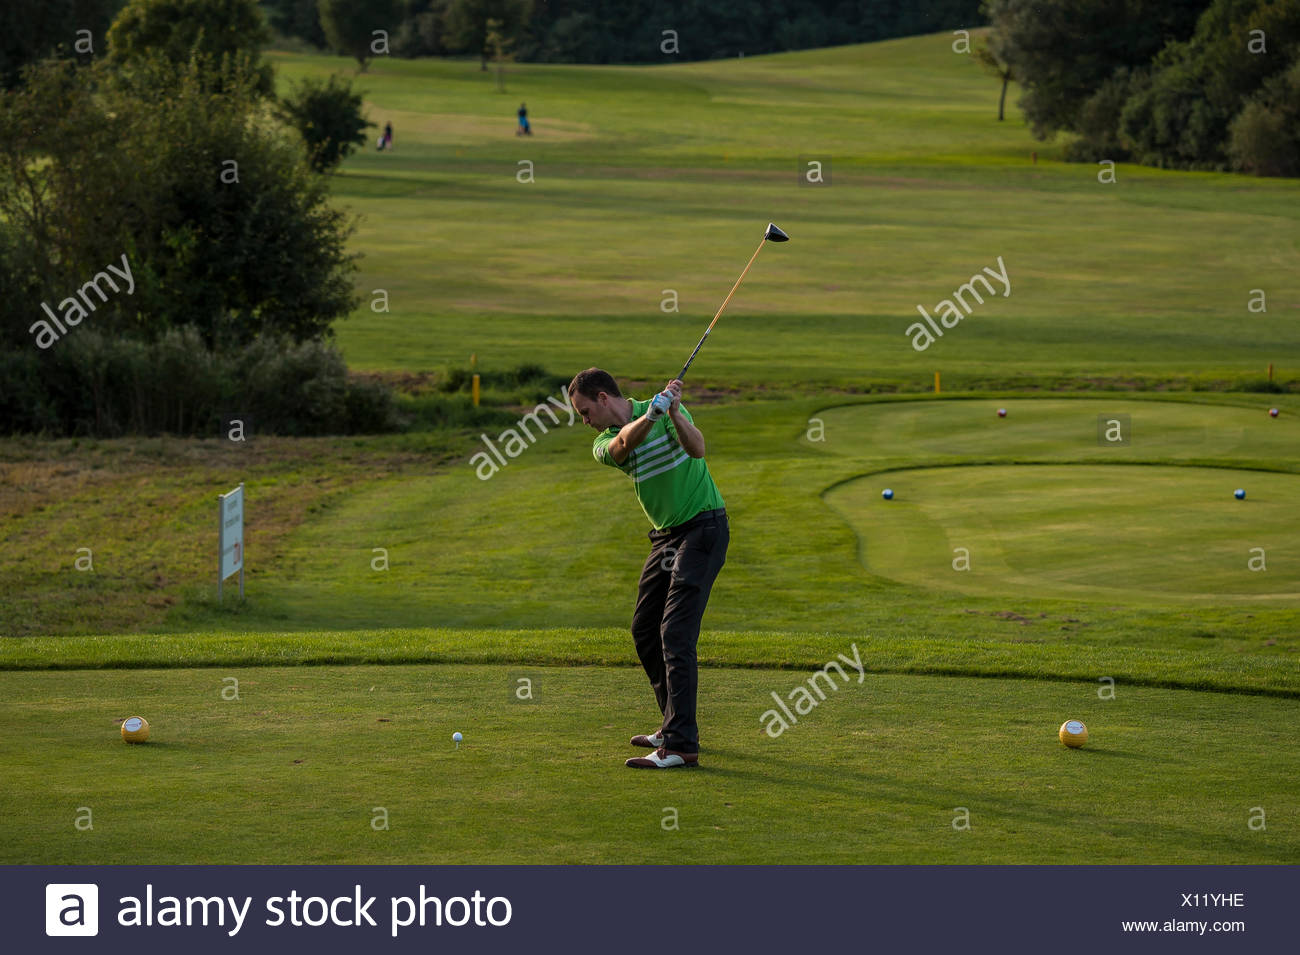 Golfer striking the ball on a golf course, Bavaria, Germany - Stock Image